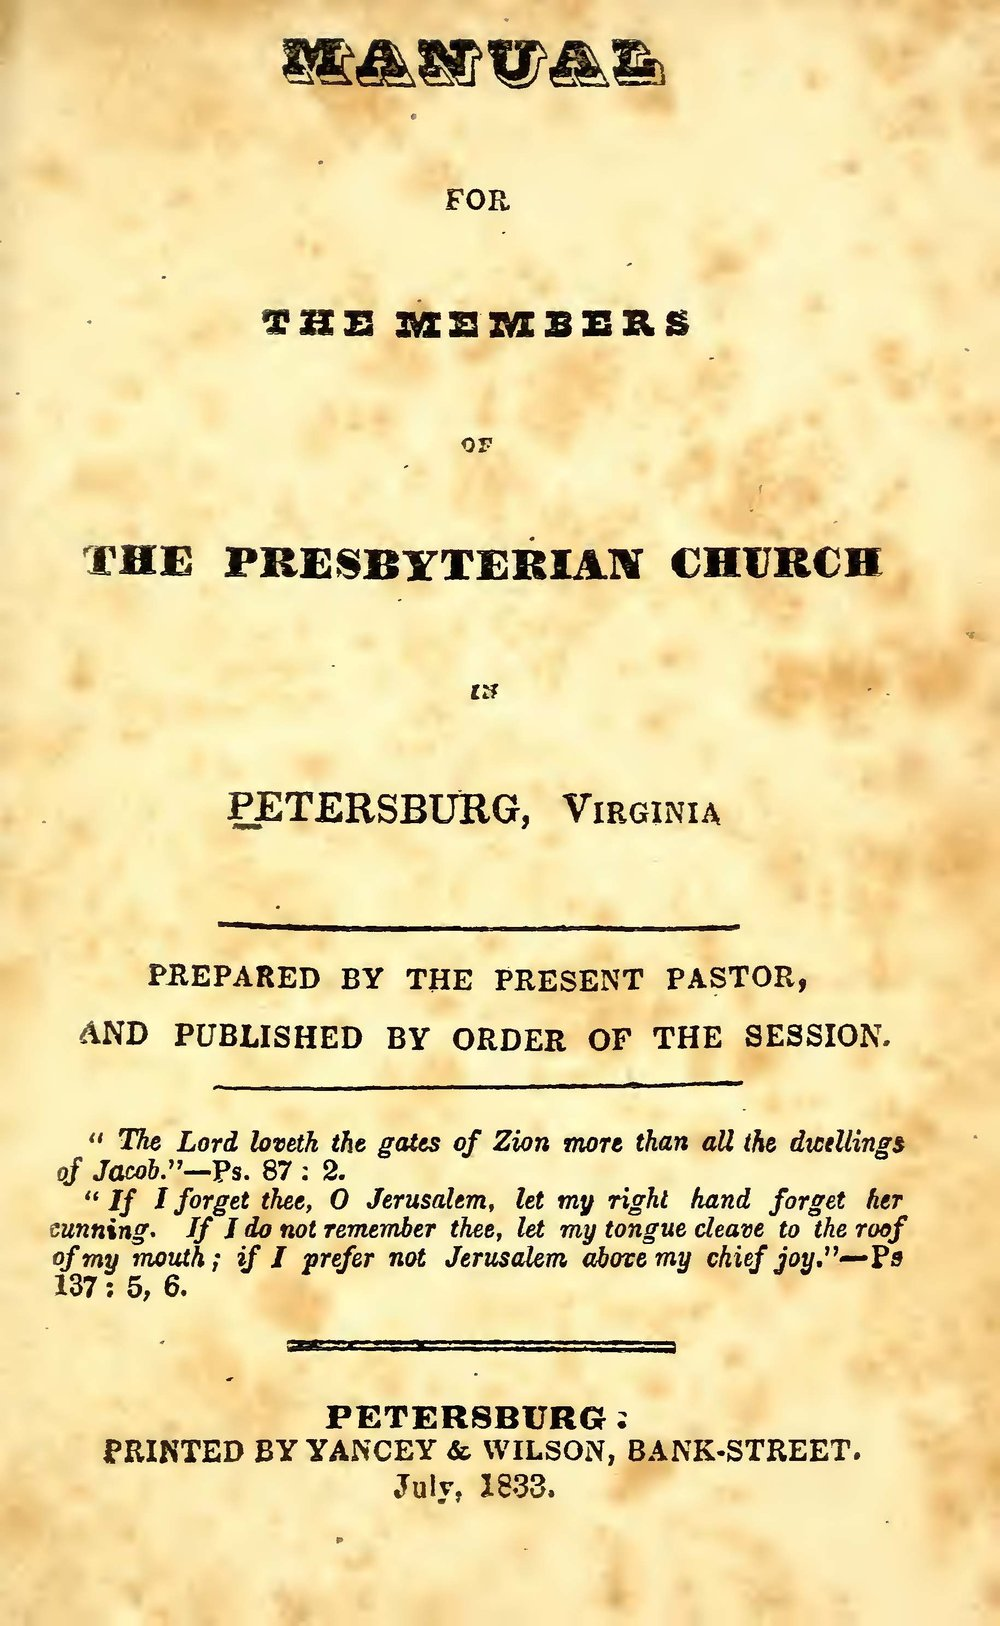 Plumer, Manual for Members of Petersburg Church - edited.jpg